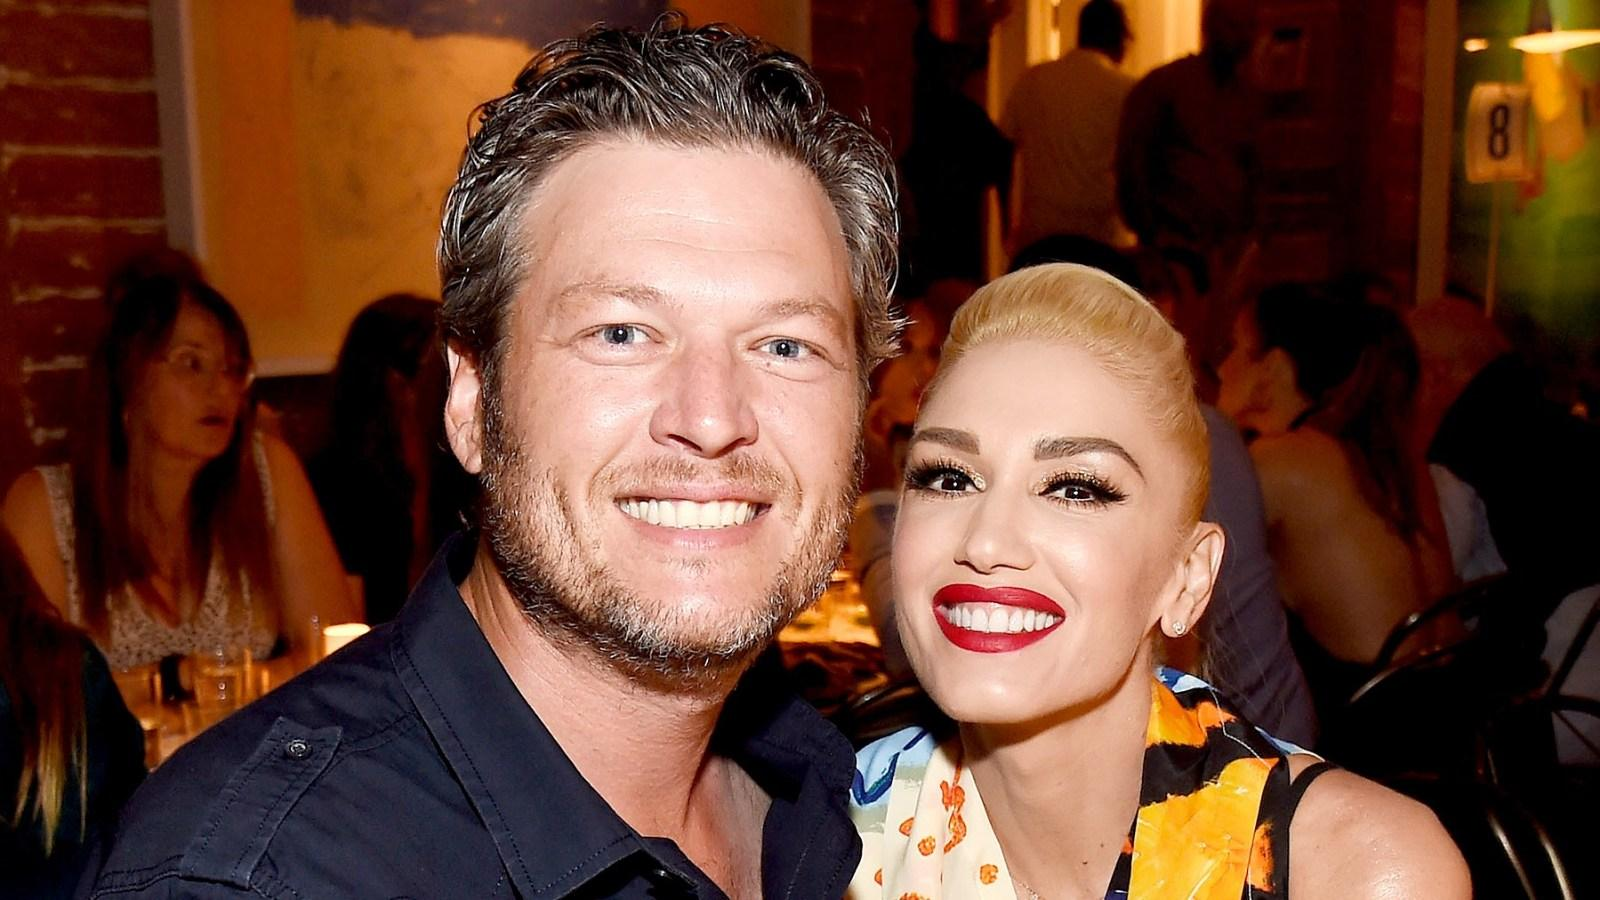 Gwen Stefani's Co-Parenting With Ex-Husband Gavin Rossdale Is Not The Best - But She Really Appreciates Blake Shelton's Help!